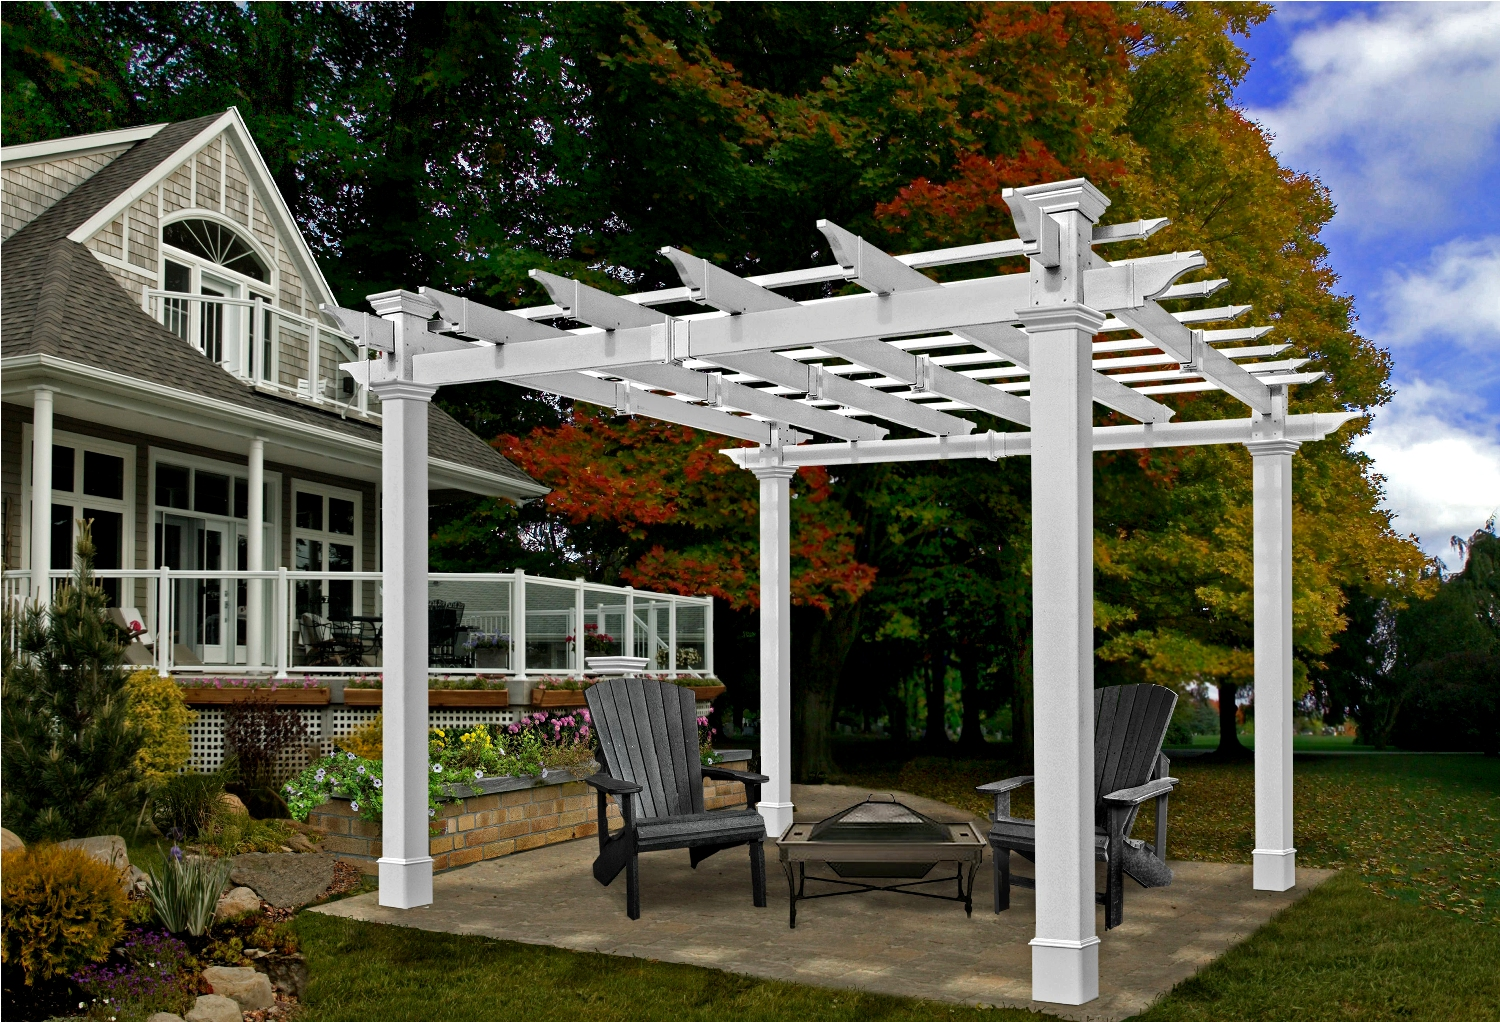 Mandalay Pergola - Chadsworth's Advanced Cellular Vinyl Pergolas ...